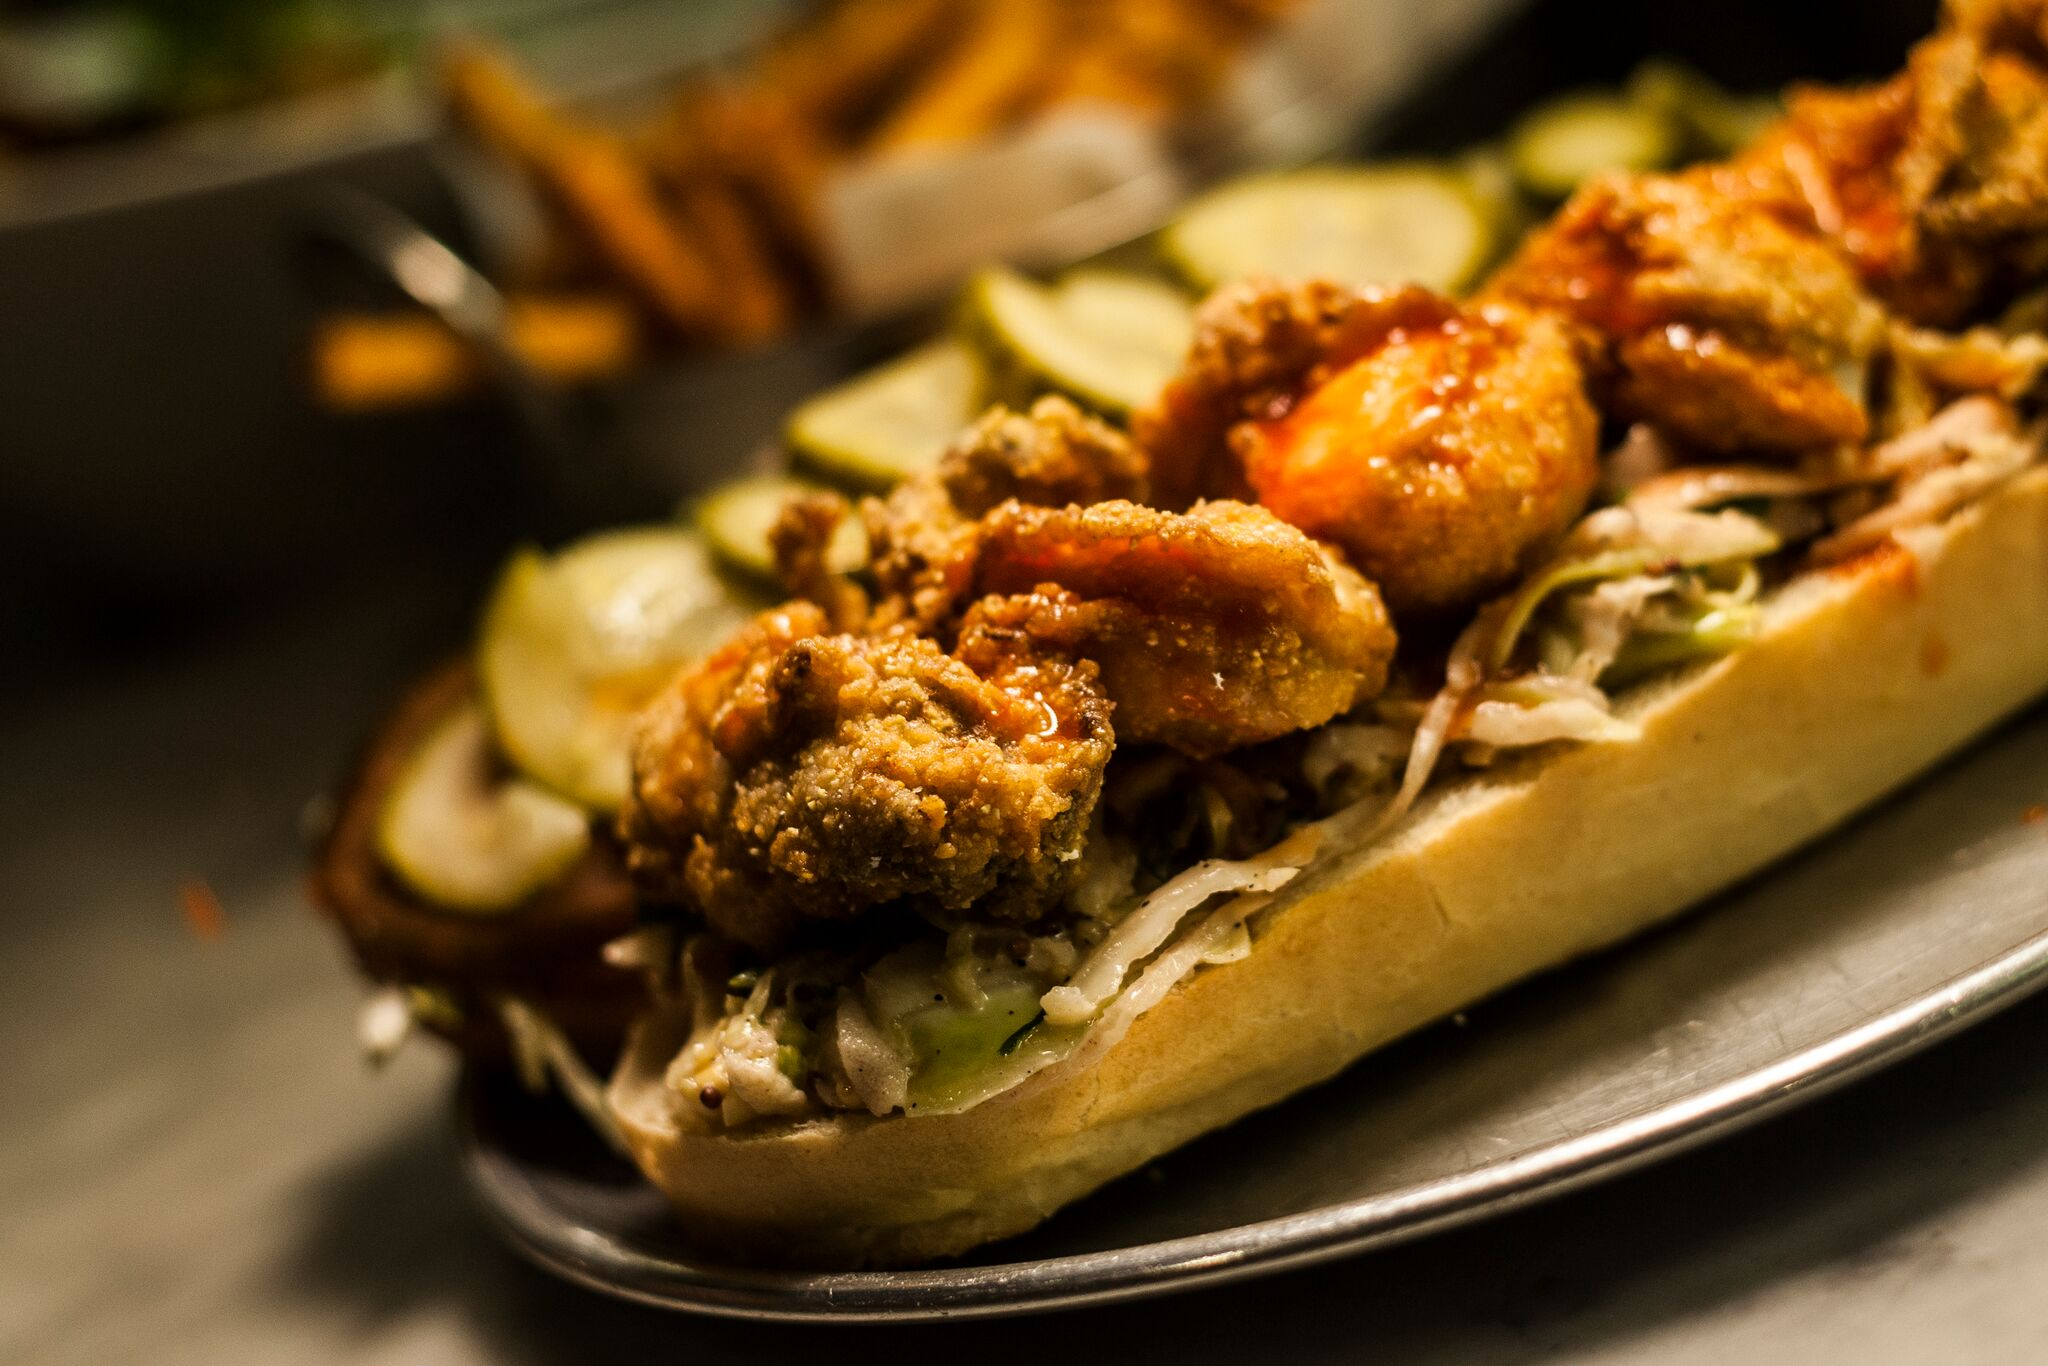 Fried Shrimp & Oyster Po' boy